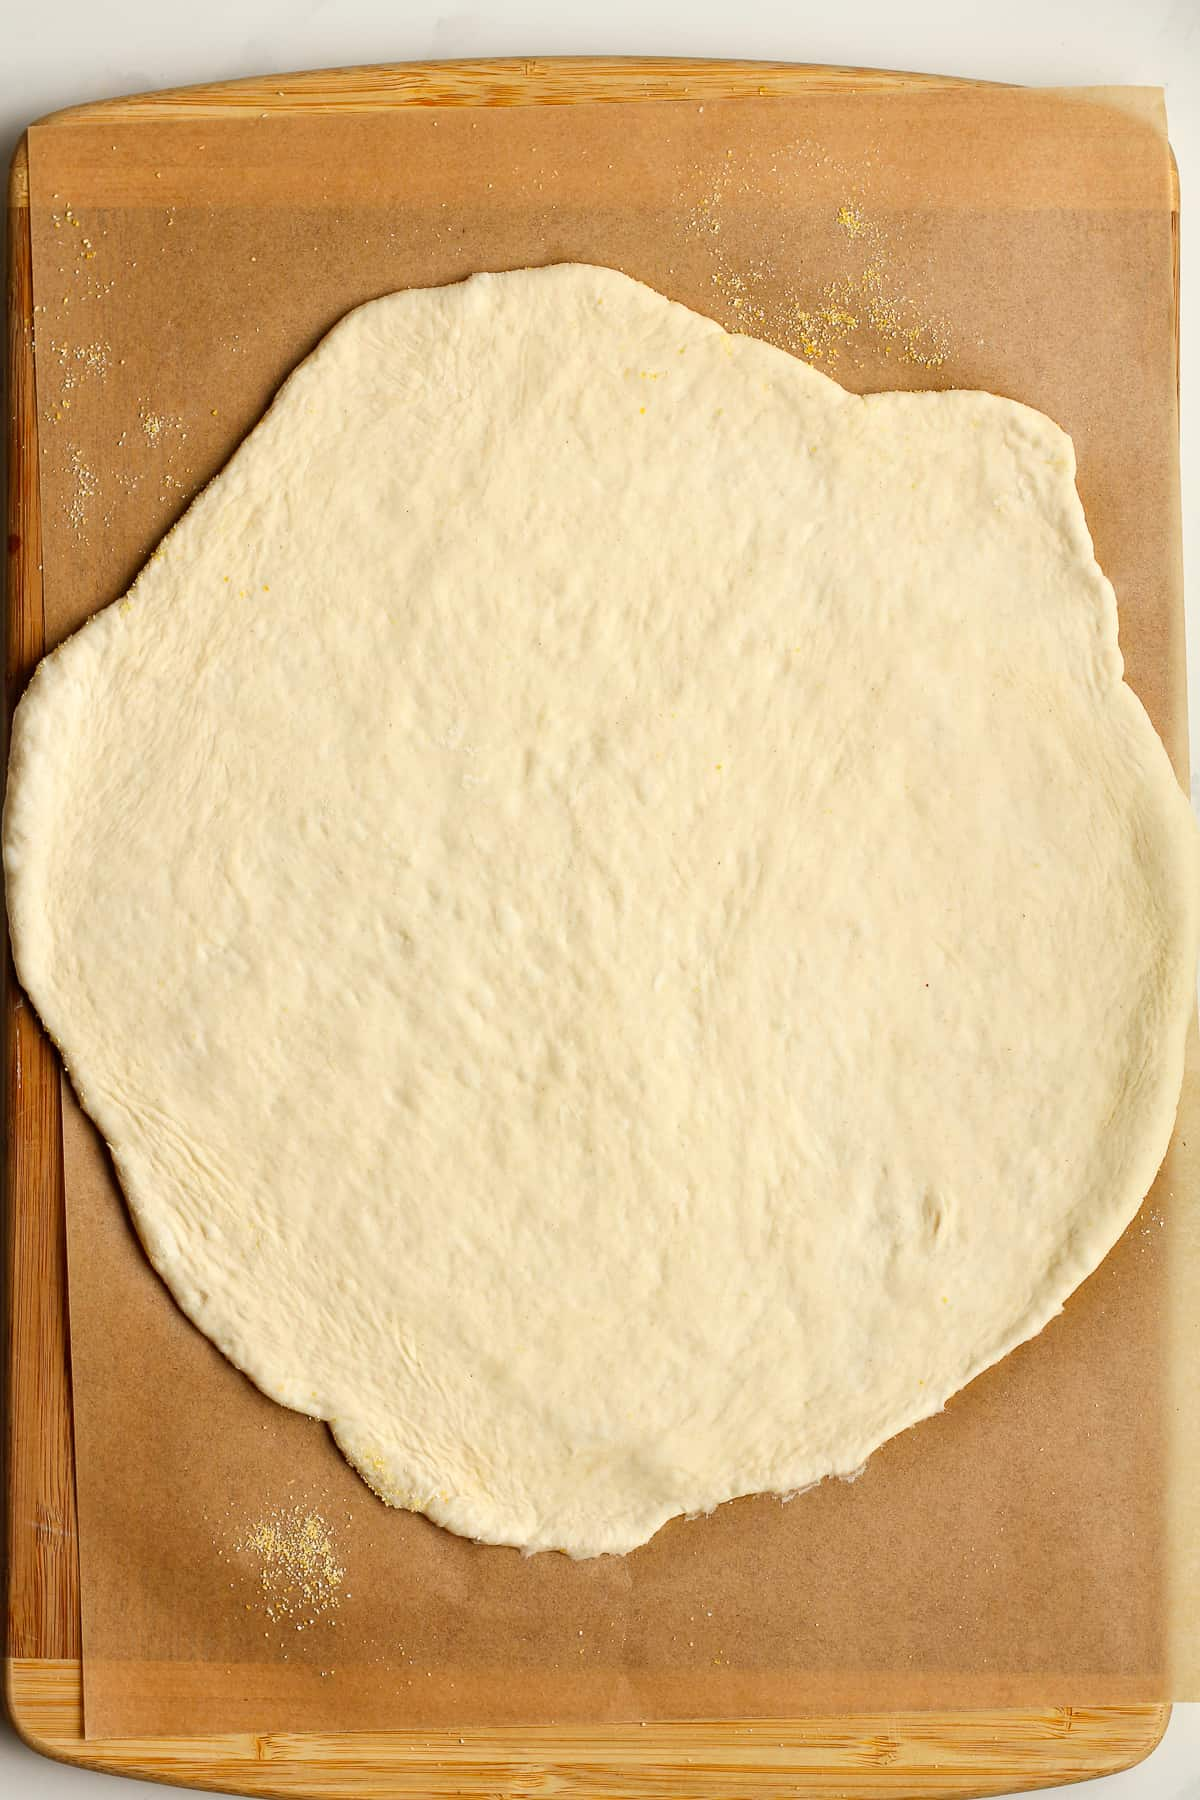 The pizza dough rolled out.